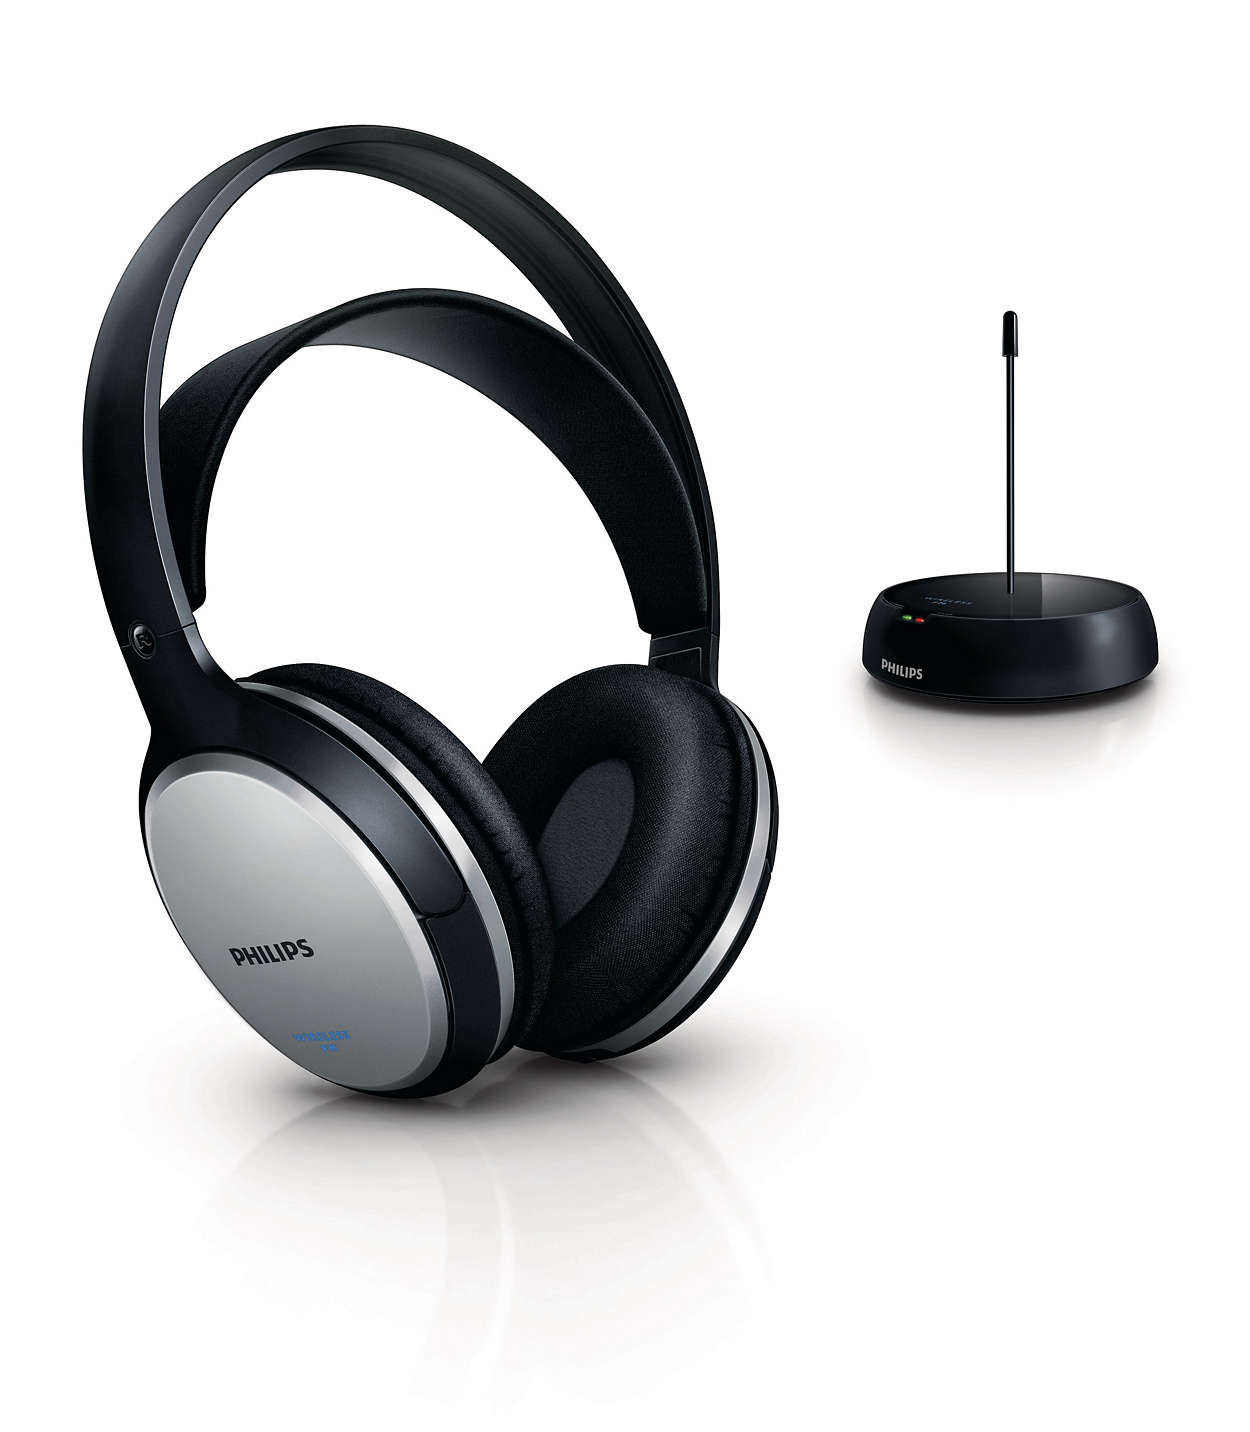 Wireless Hifi Headphone Shc5100 10 Philips Headseet Kw